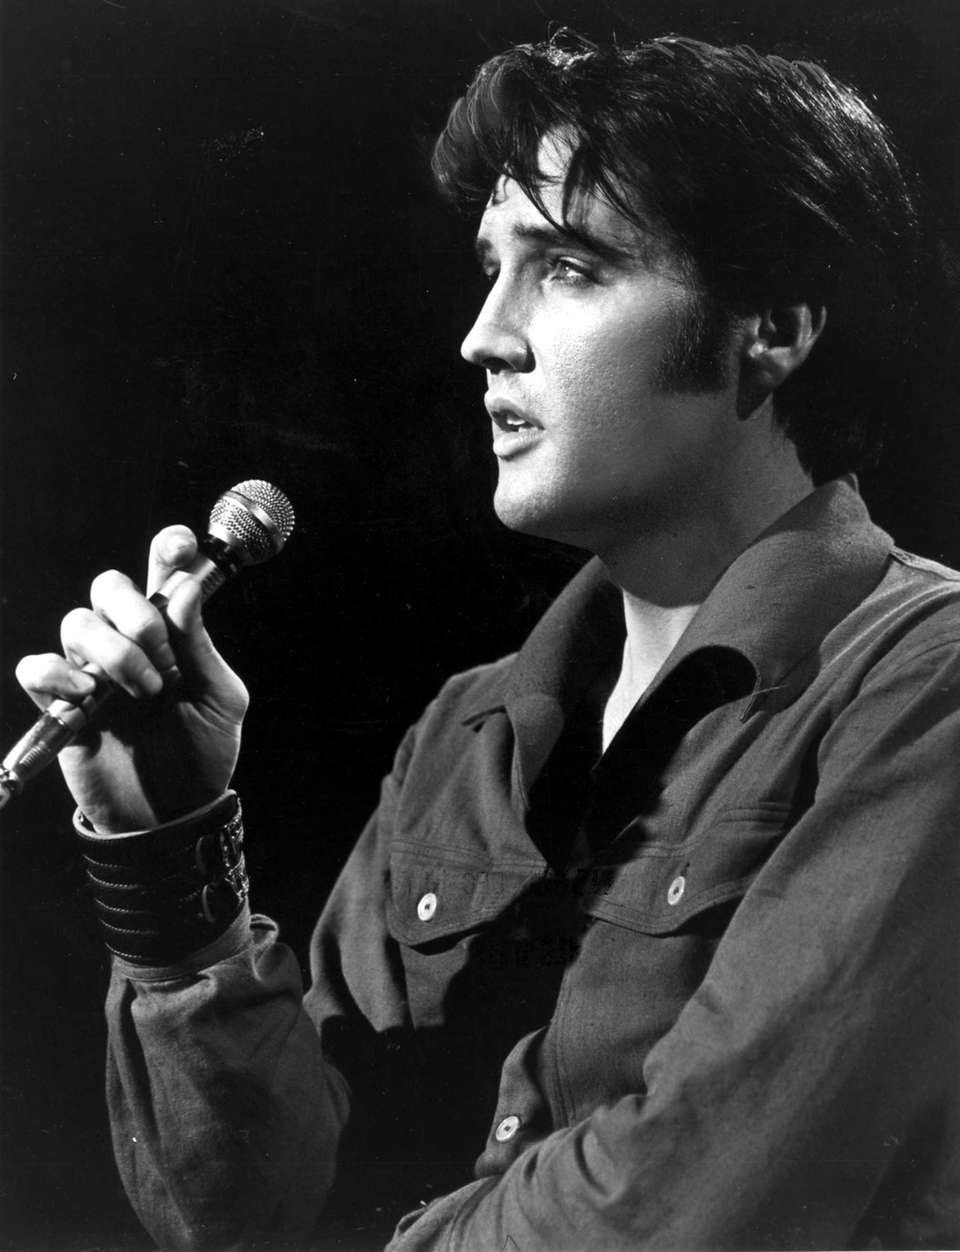 Elvis Presley sings romantic ballads in